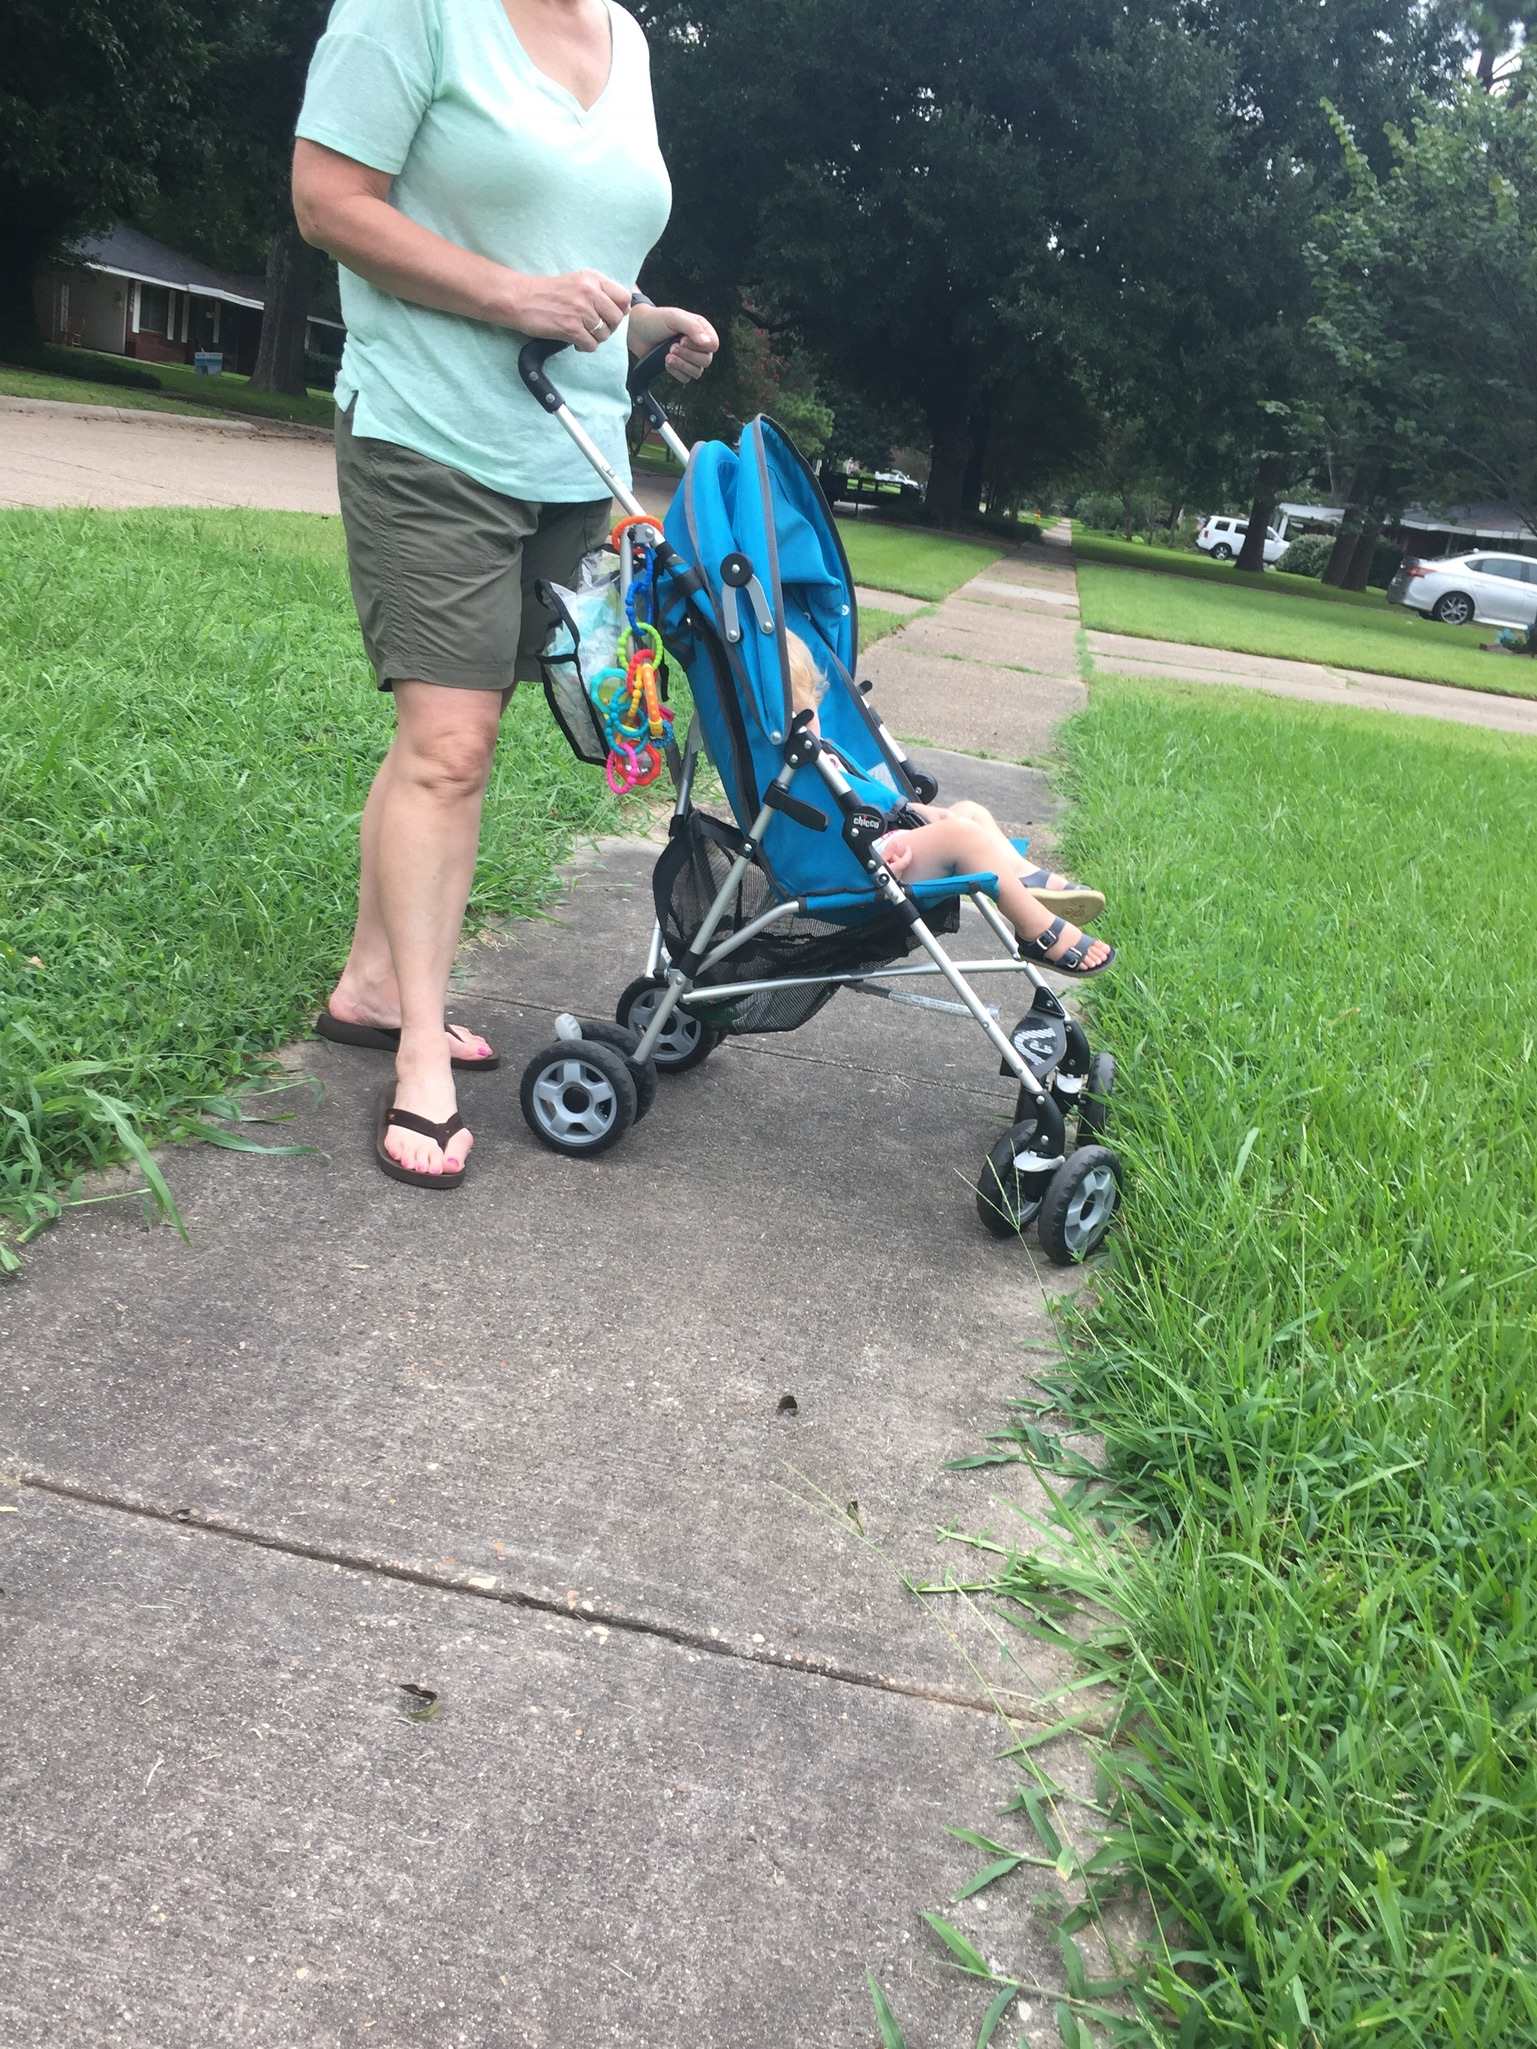 To his credit, he did get the entire stroller. :-)